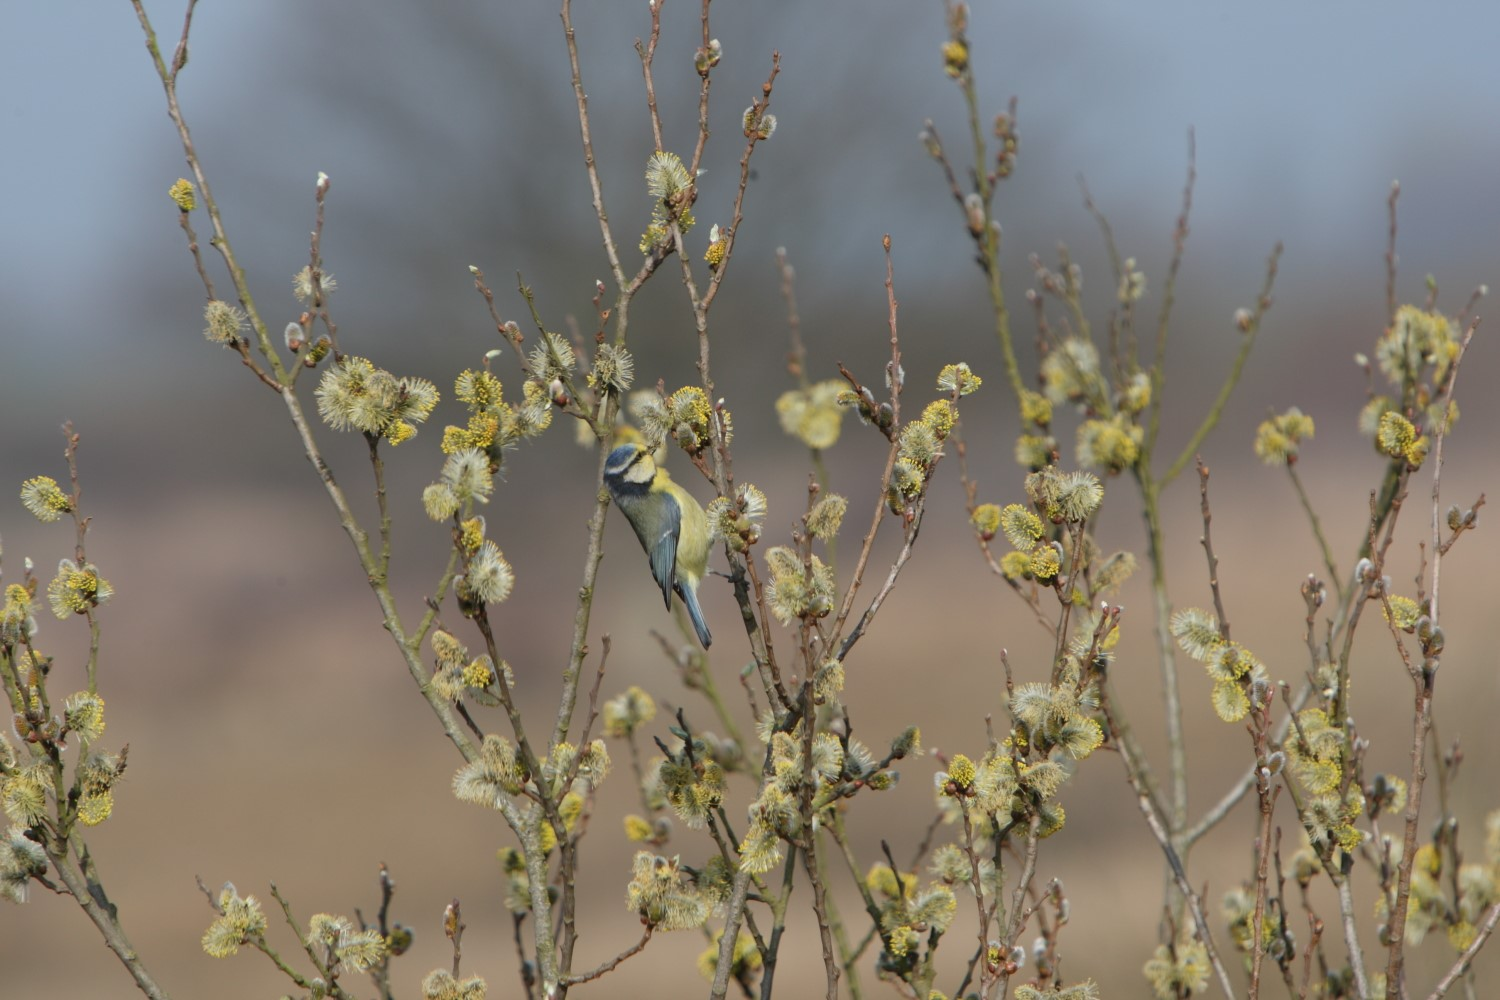 Blue Tit, Graham Coules